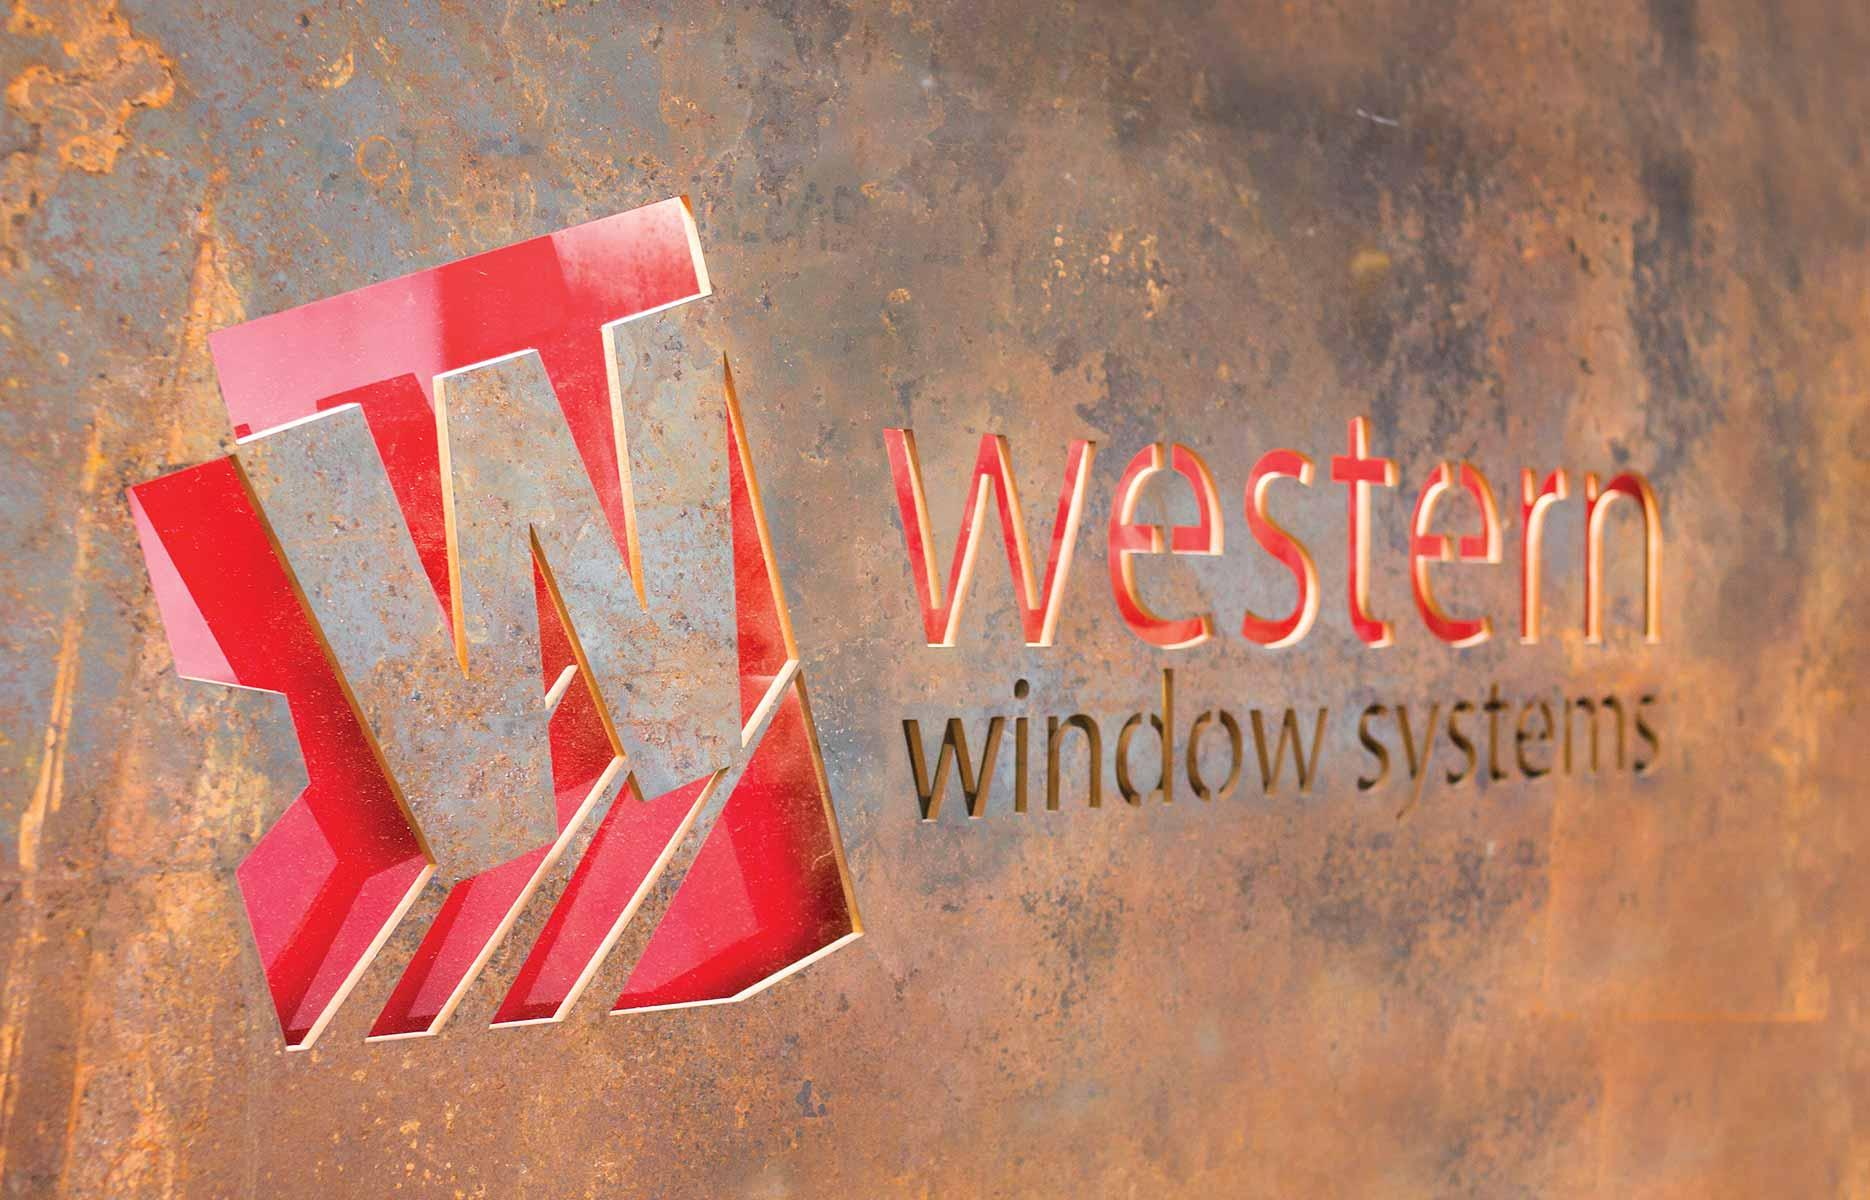 Western Window Systems Announces Investment From PWP Growth Equity to Fuel Further Growth